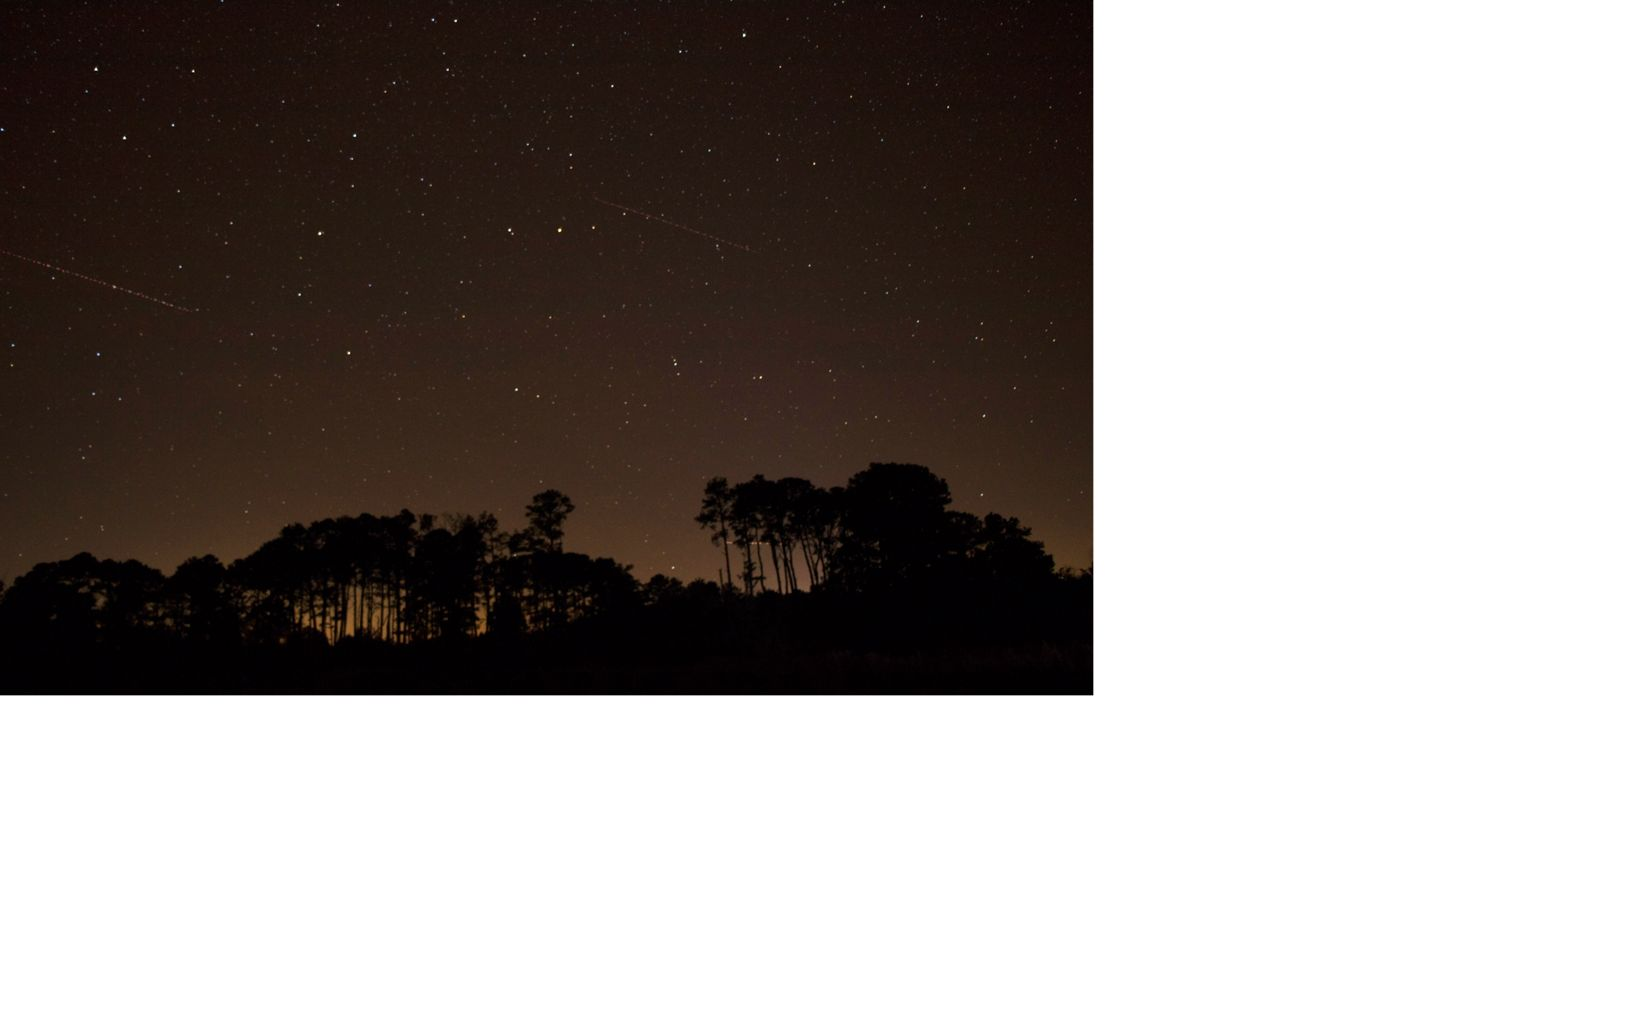 Stars in a dark night sky over Brownsville Preserve.